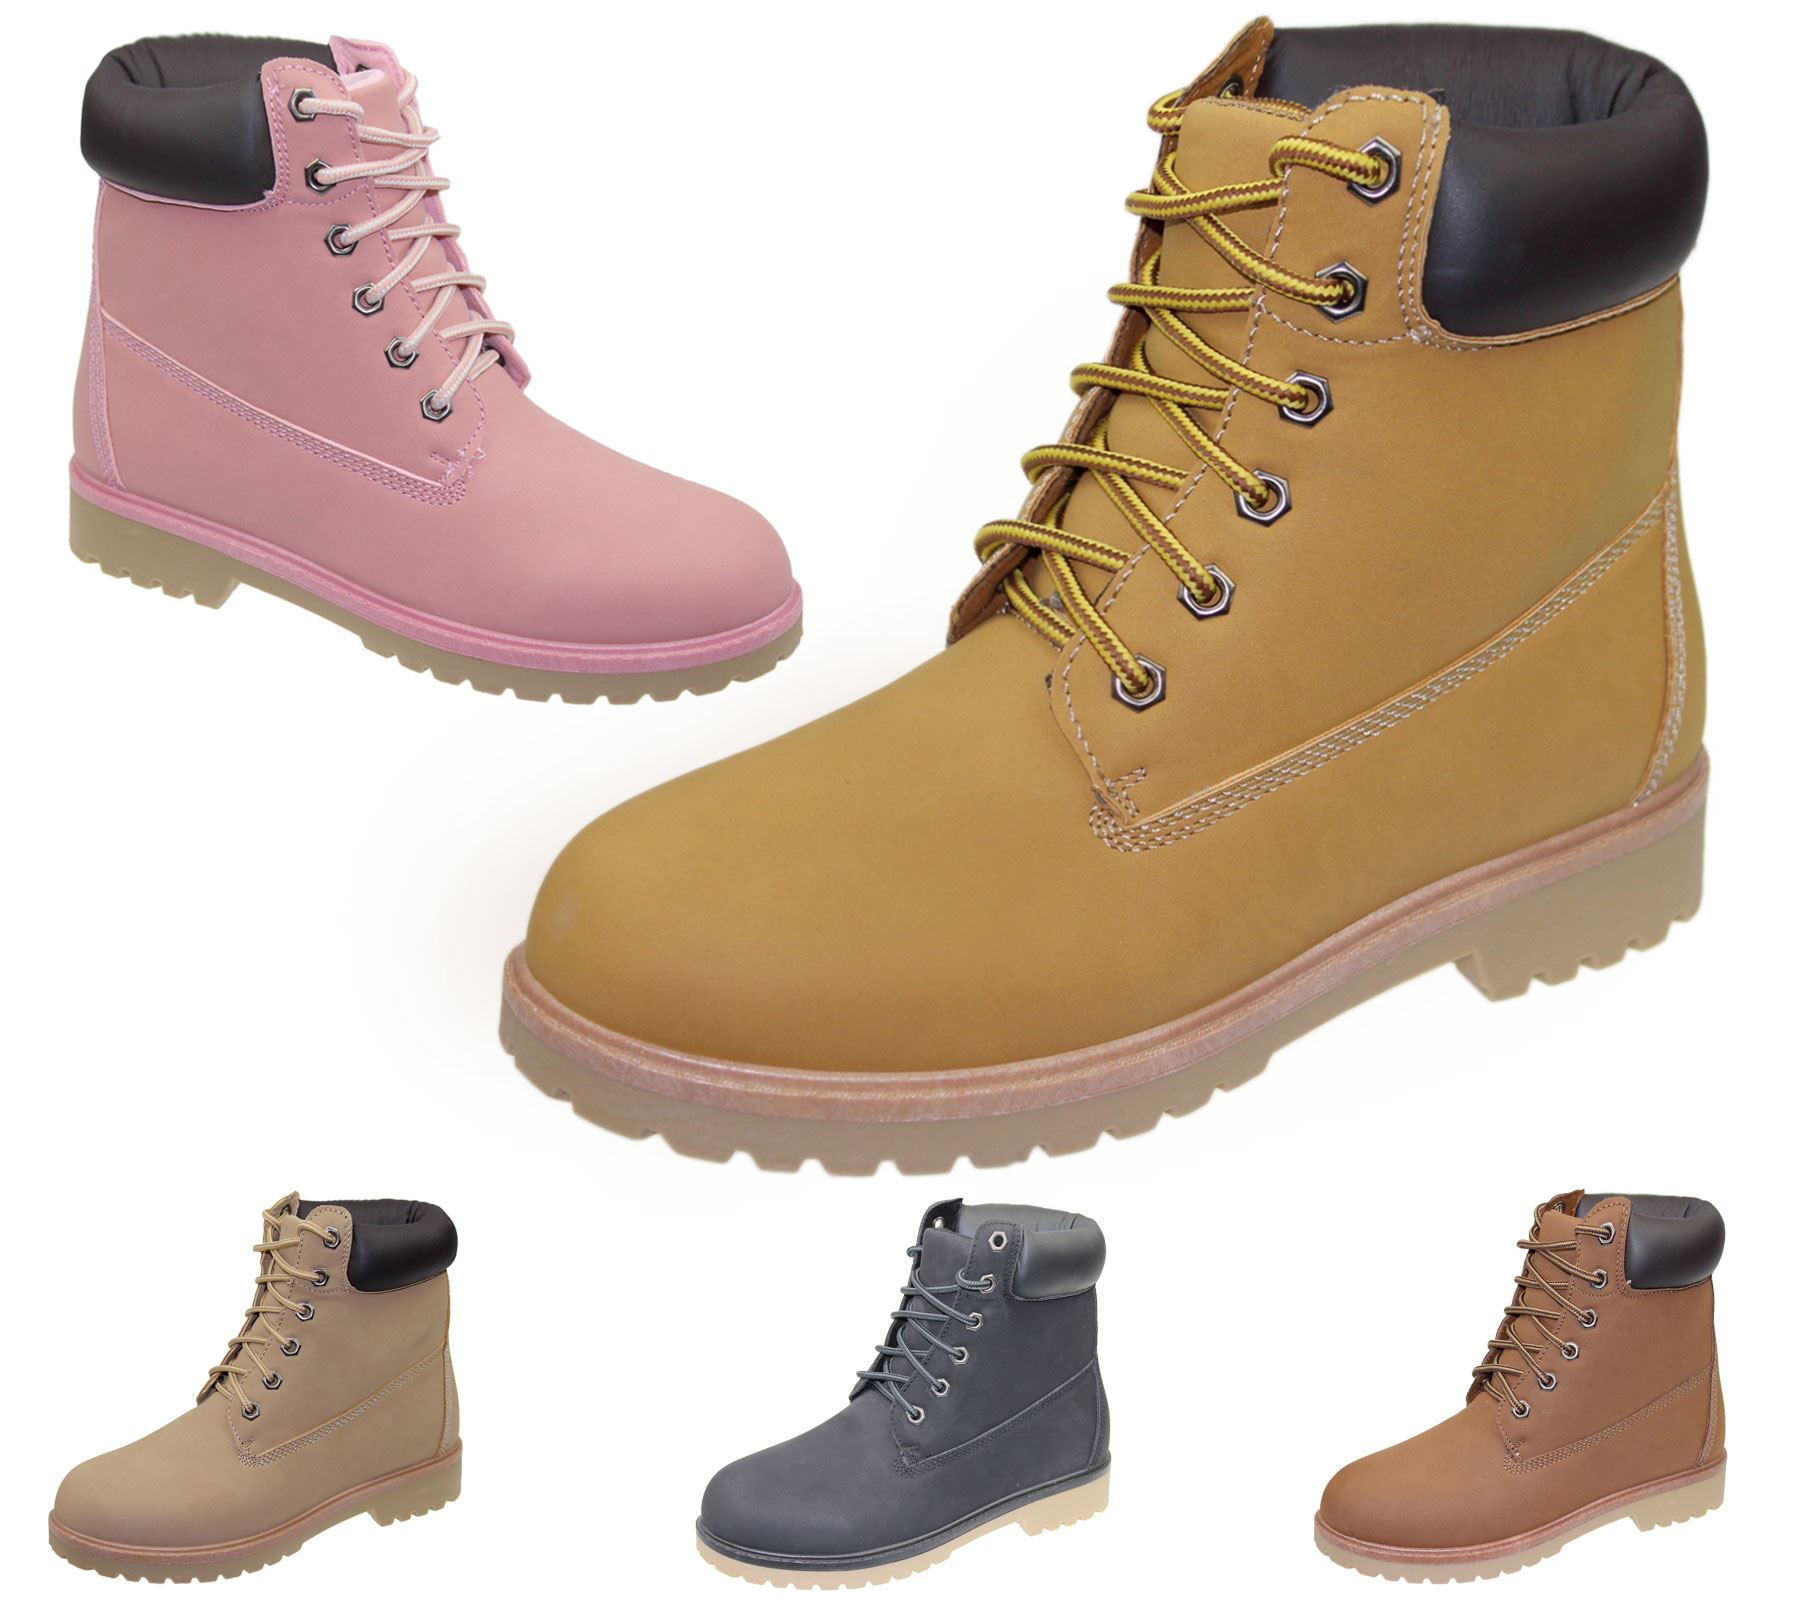 Womens High Top Boots Hiking Desert Combat Ladies Ankle Work Biker Shoes  Size 7335fb3cfd